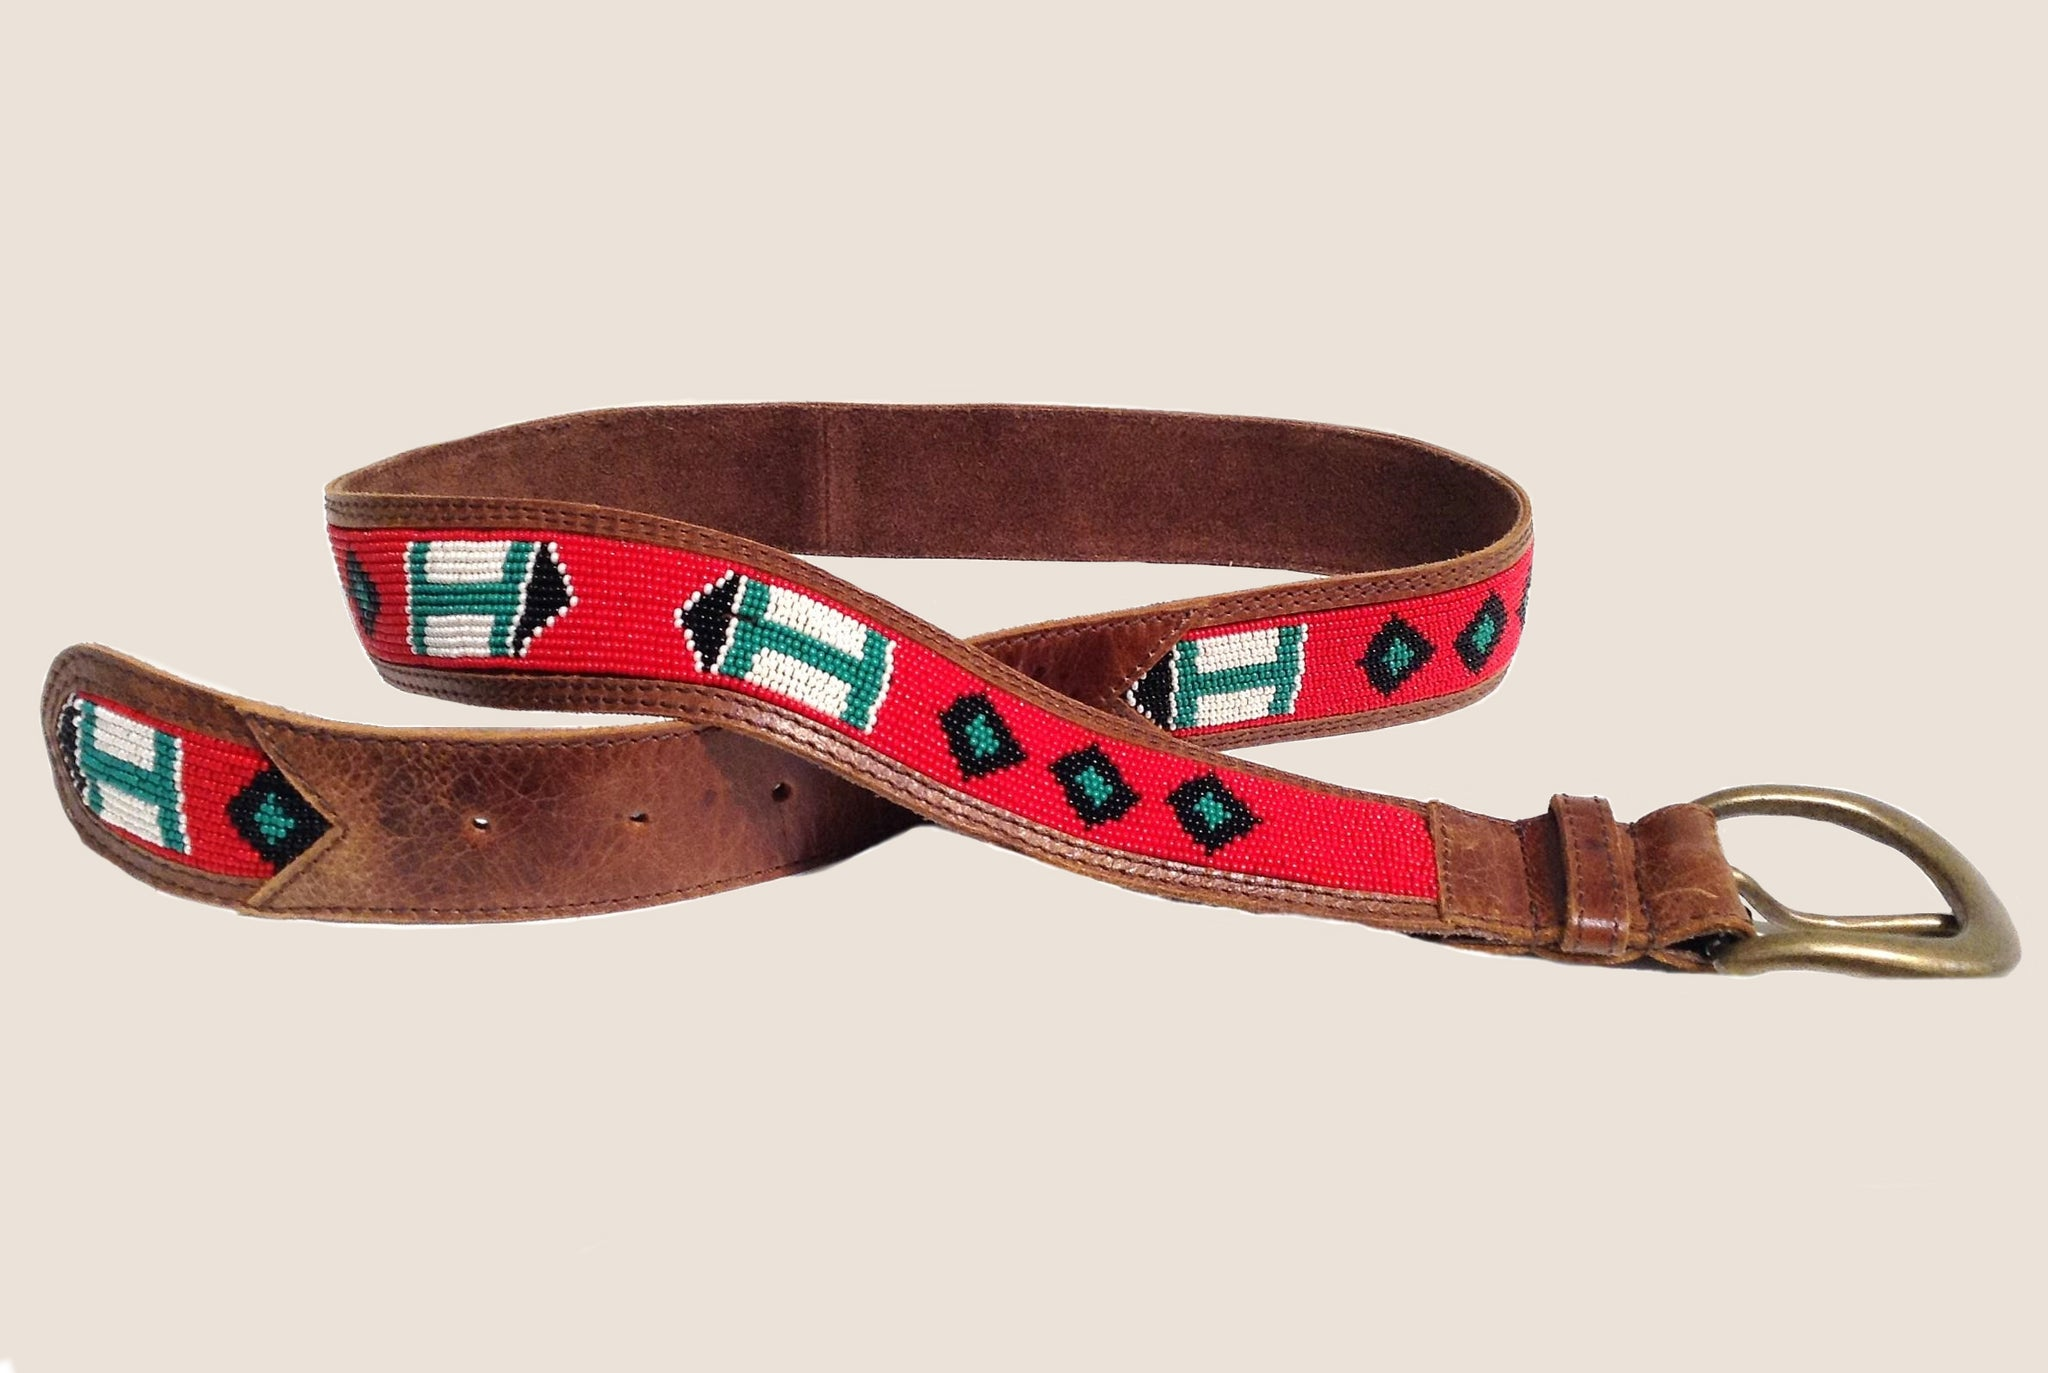 Embellished Leather Belt-Brown, Red & Turq